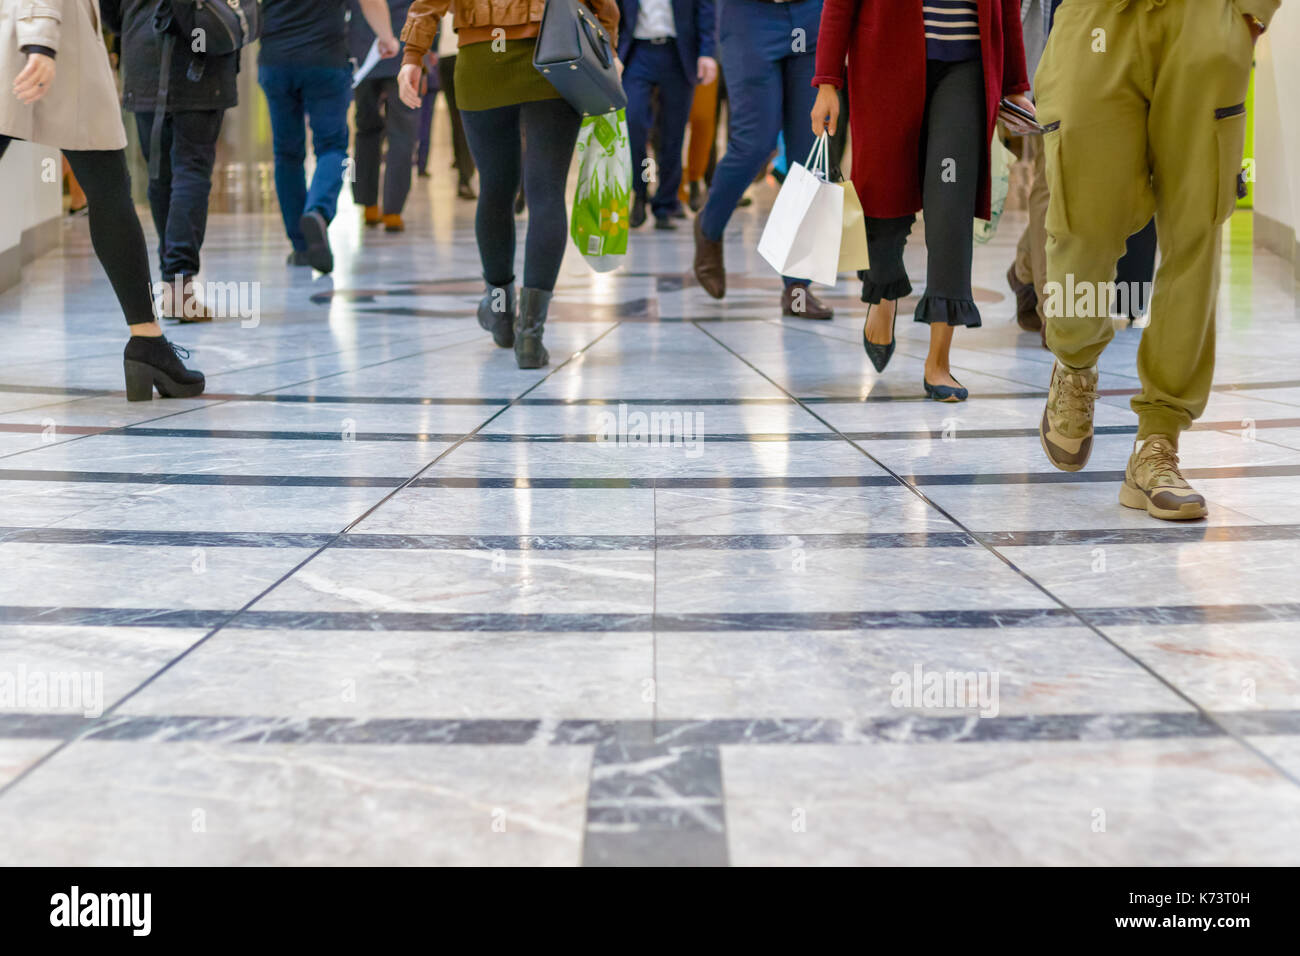 A modern floor with legs of a crowd walking in a shopping mall in the background - Stock Image